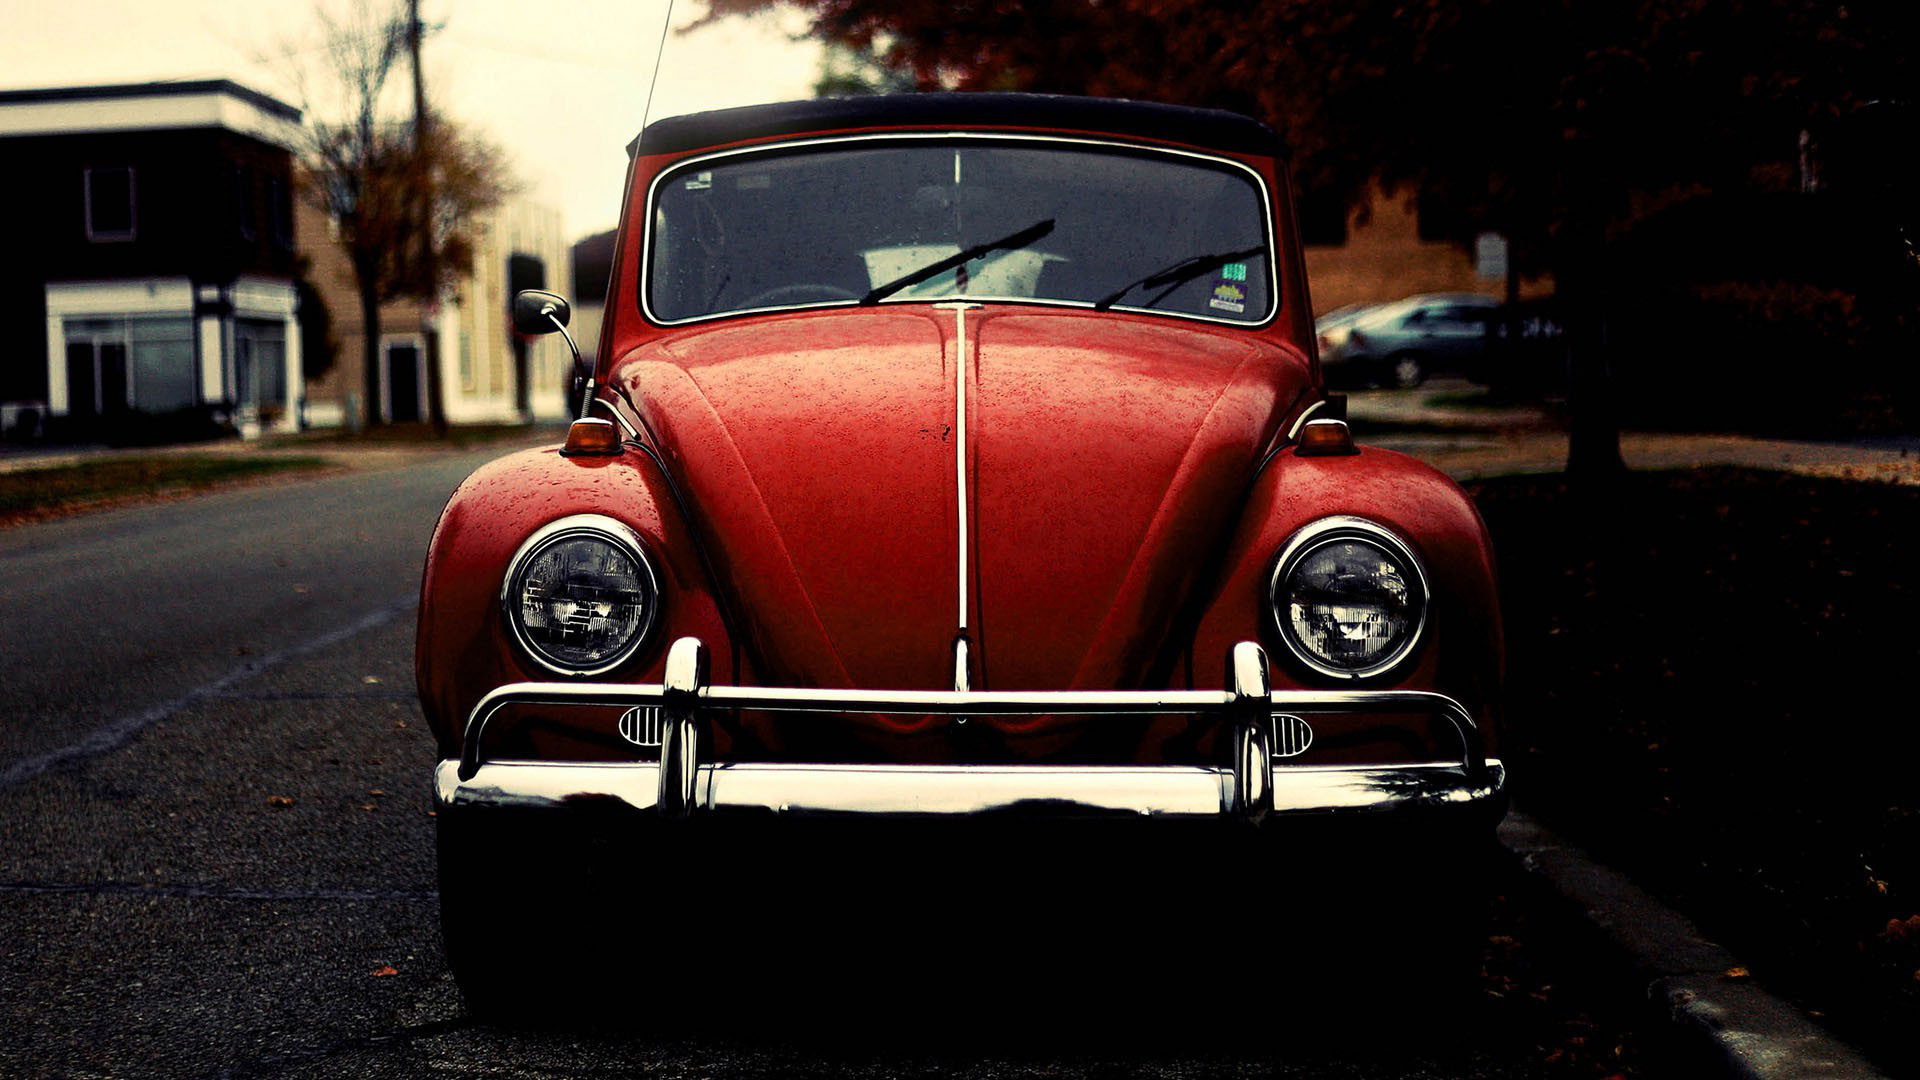 Old Cars Wallpapers For Iphone Mercedes Benz Wallpaper Iphone 26